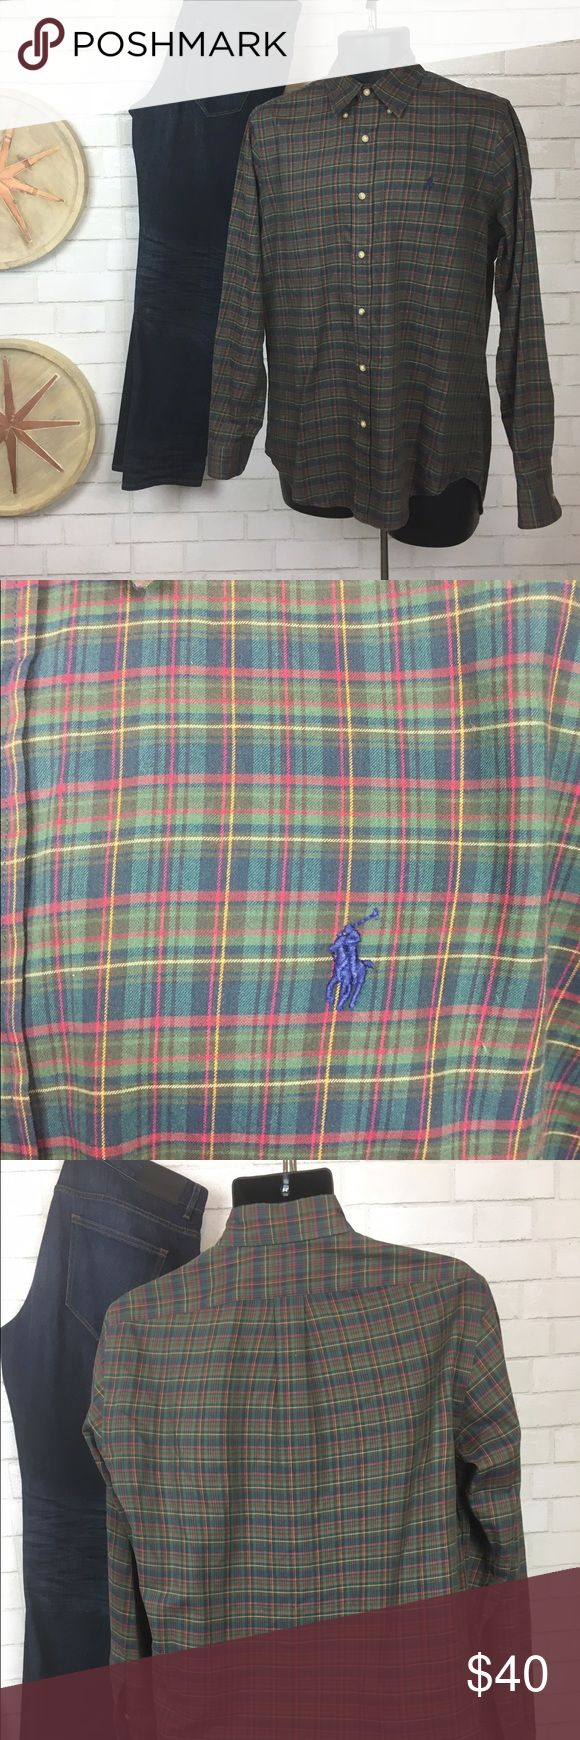 Ralph Lauren Plaid Dress Button Down Great condition shirt, clean and free of stains and tears. Only mark is sharpie inside of Tag, but not noticeable when worn. Blue, green, red make up the main colors of shirt Ralph Lauren Shirts Dress Shirts